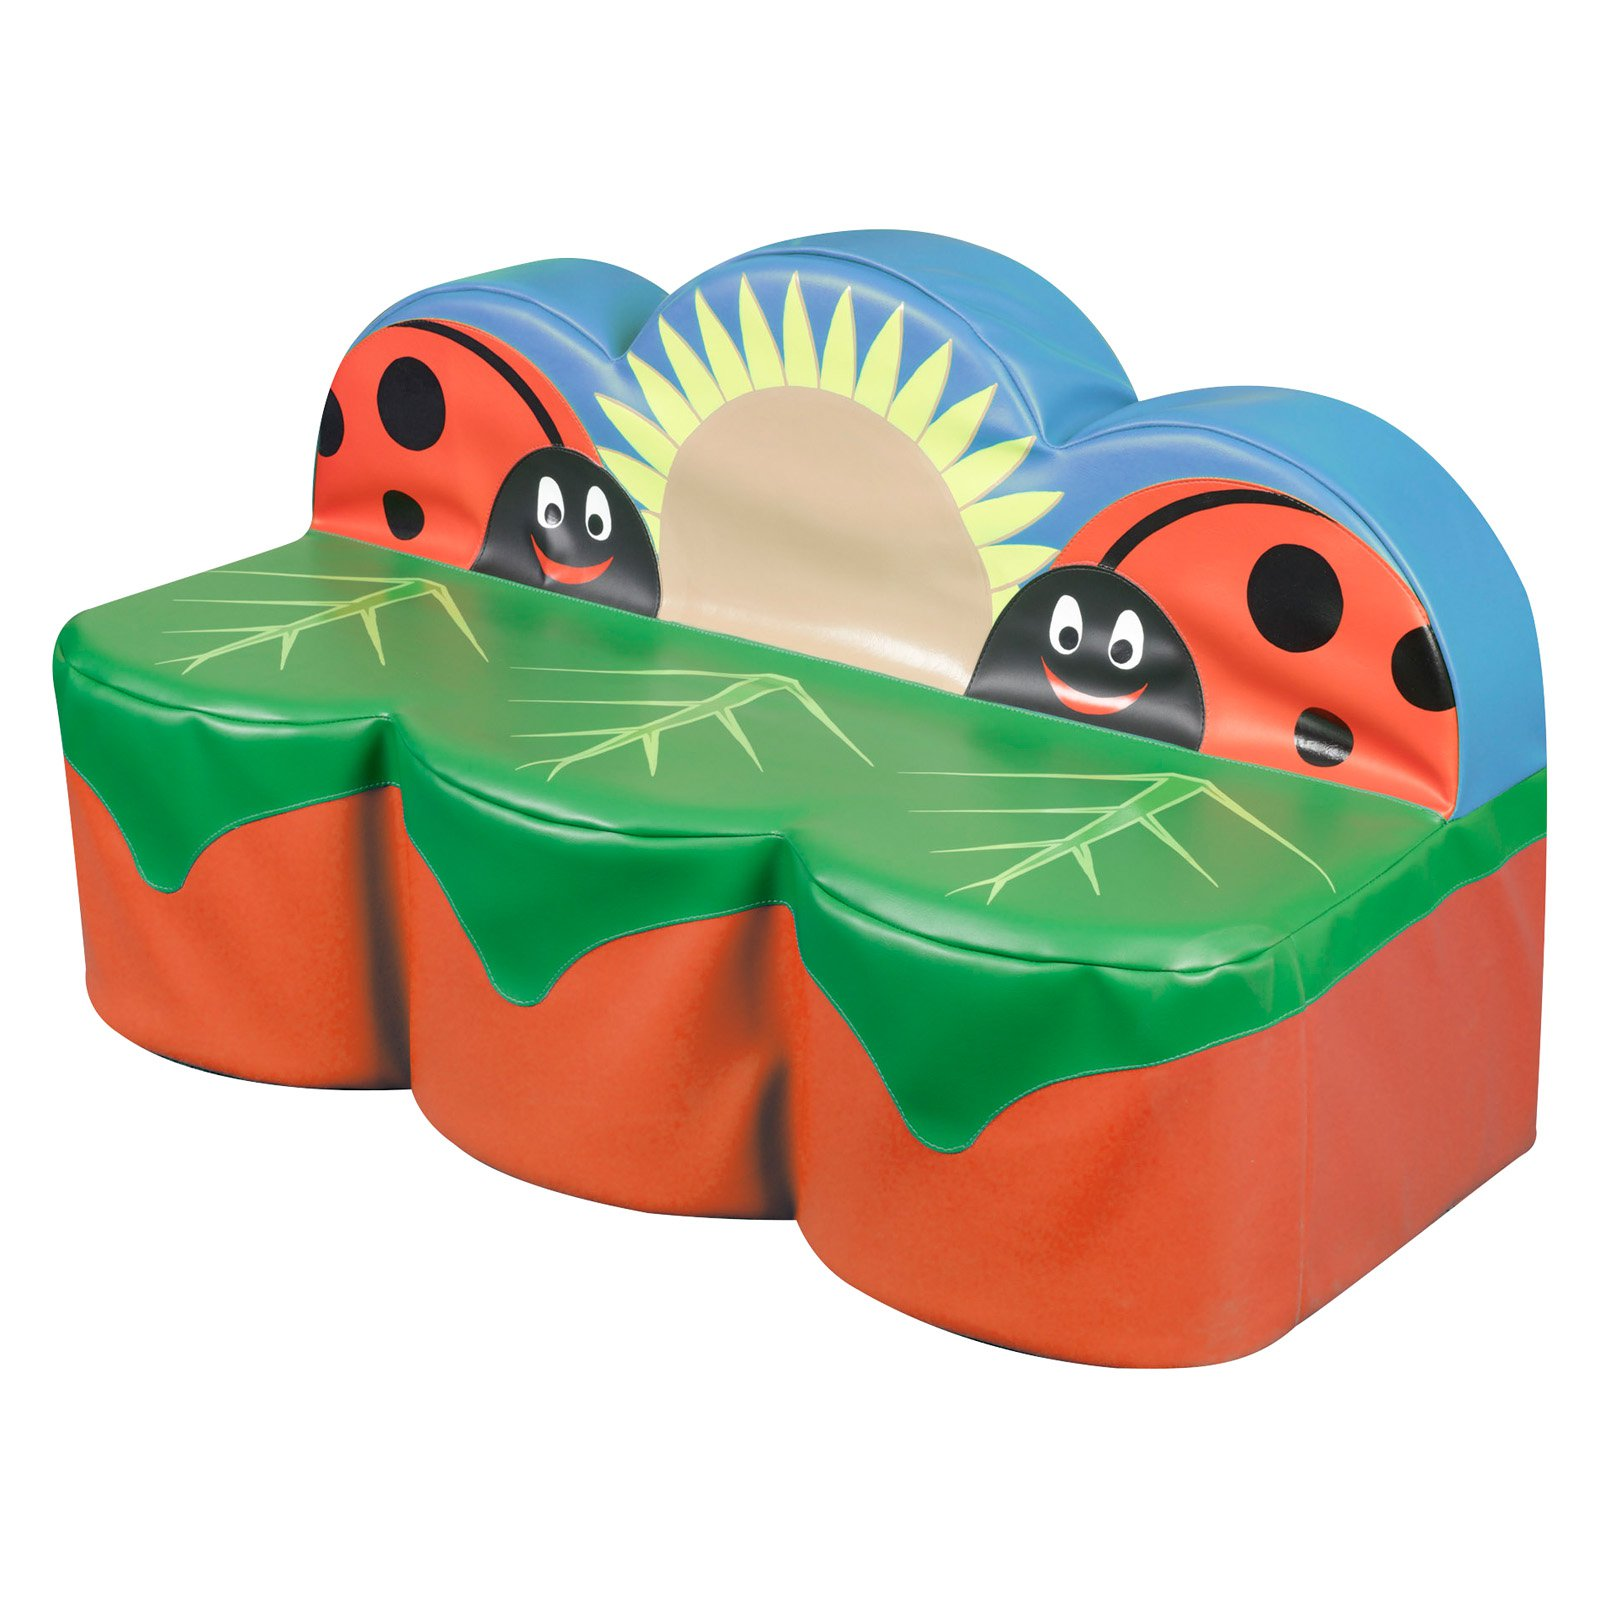 Kalokids Back to Nature Ladybug 3 Seat Giant Sofa